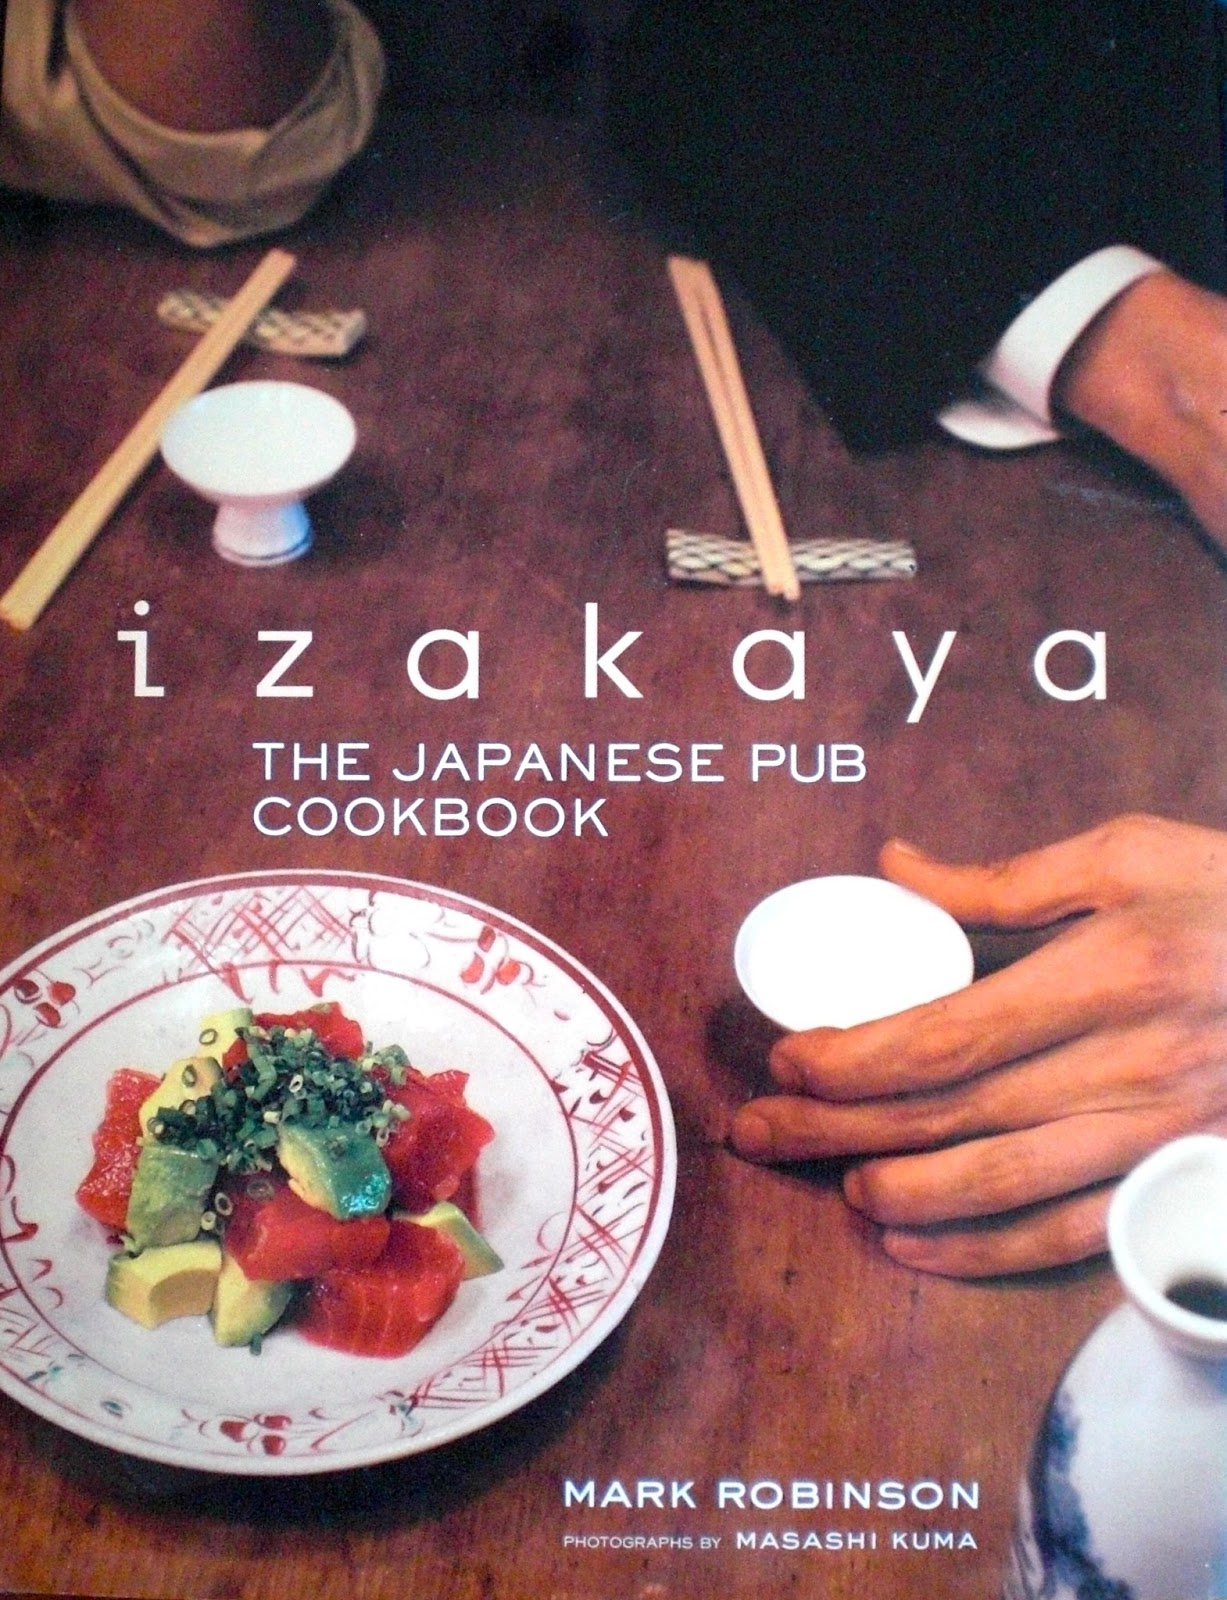 Norio on wine and food english izakaya cookbooks at one time this was the only izakaya cookbook available for english speaking clientele fortunately some other izakaya cookbooks in english have appeared forumfinder Gallery